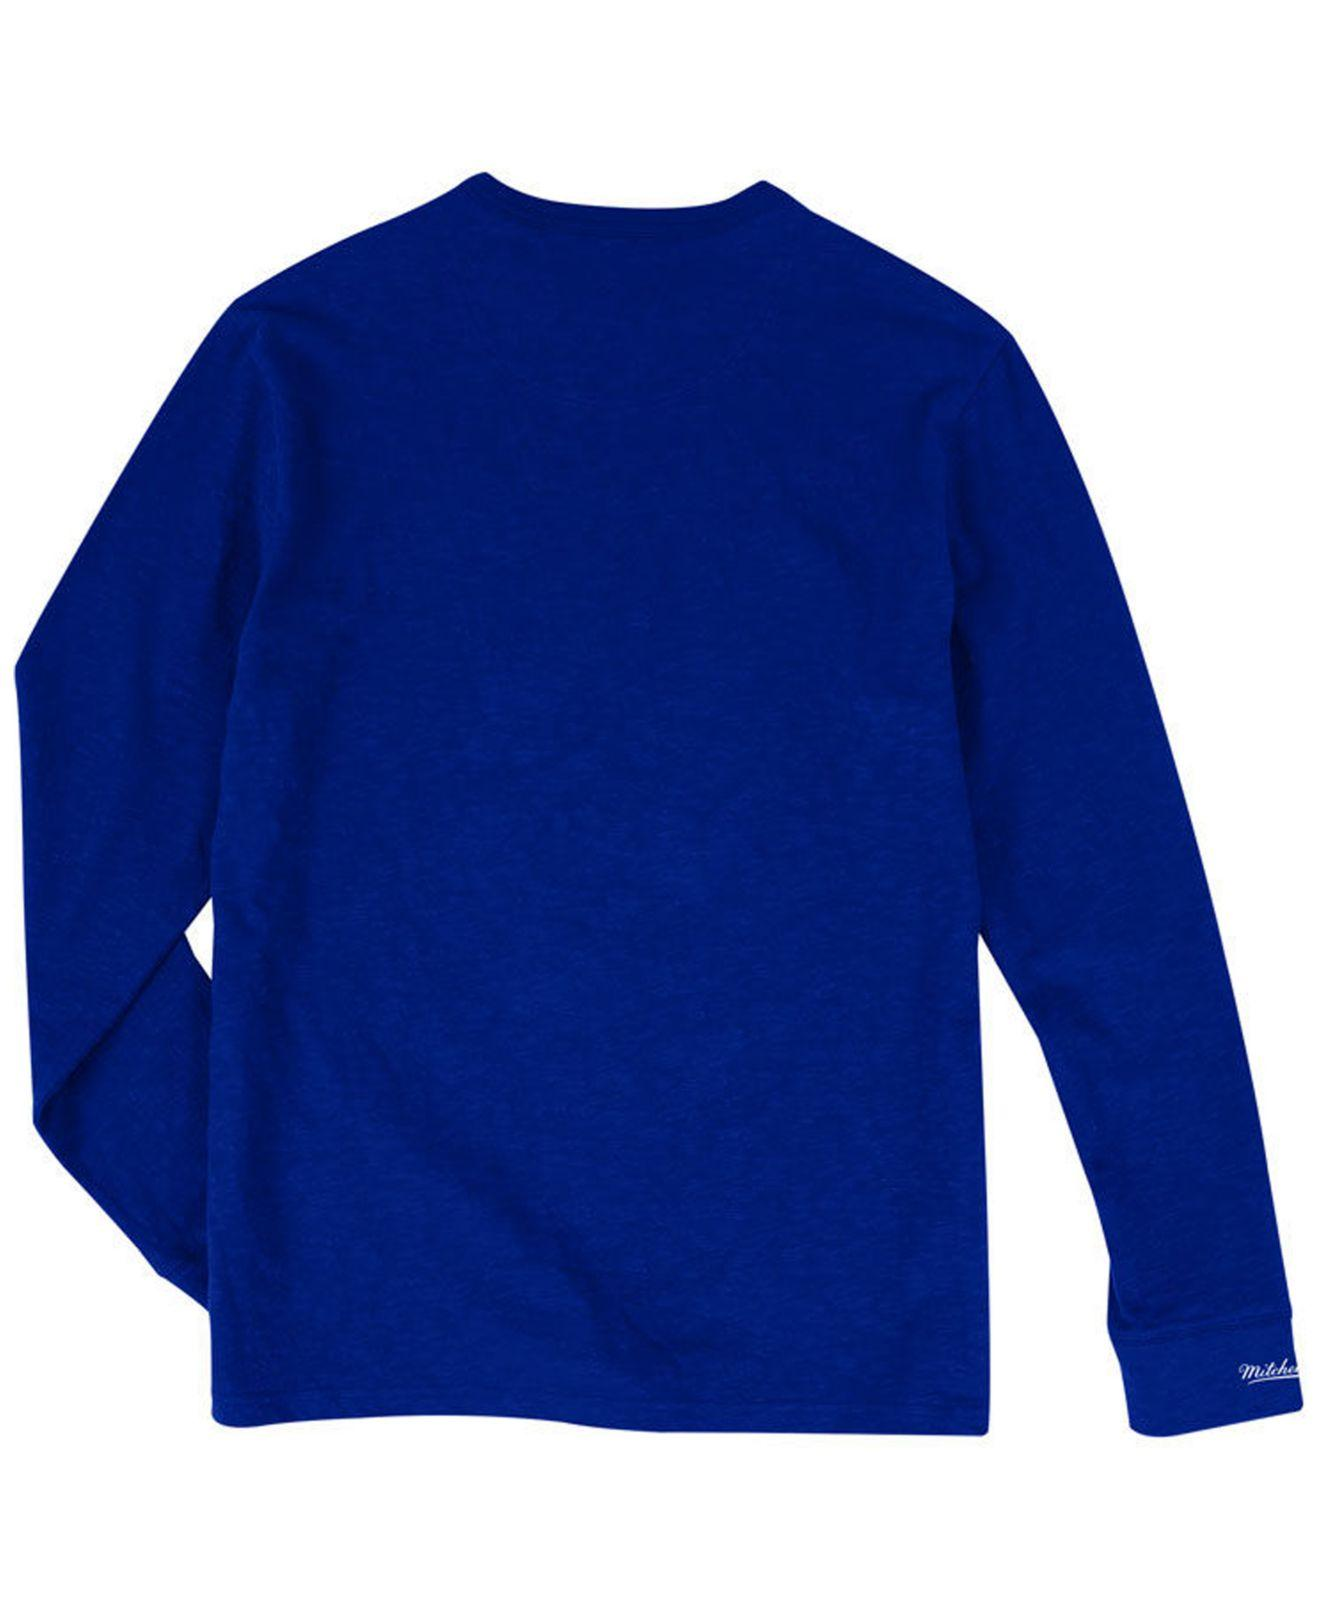 6573f1e2 Lyst - Mitchell & Ness Los Angeles Dodgers Slub Long Sleeve T-shirt in Blue  for Men